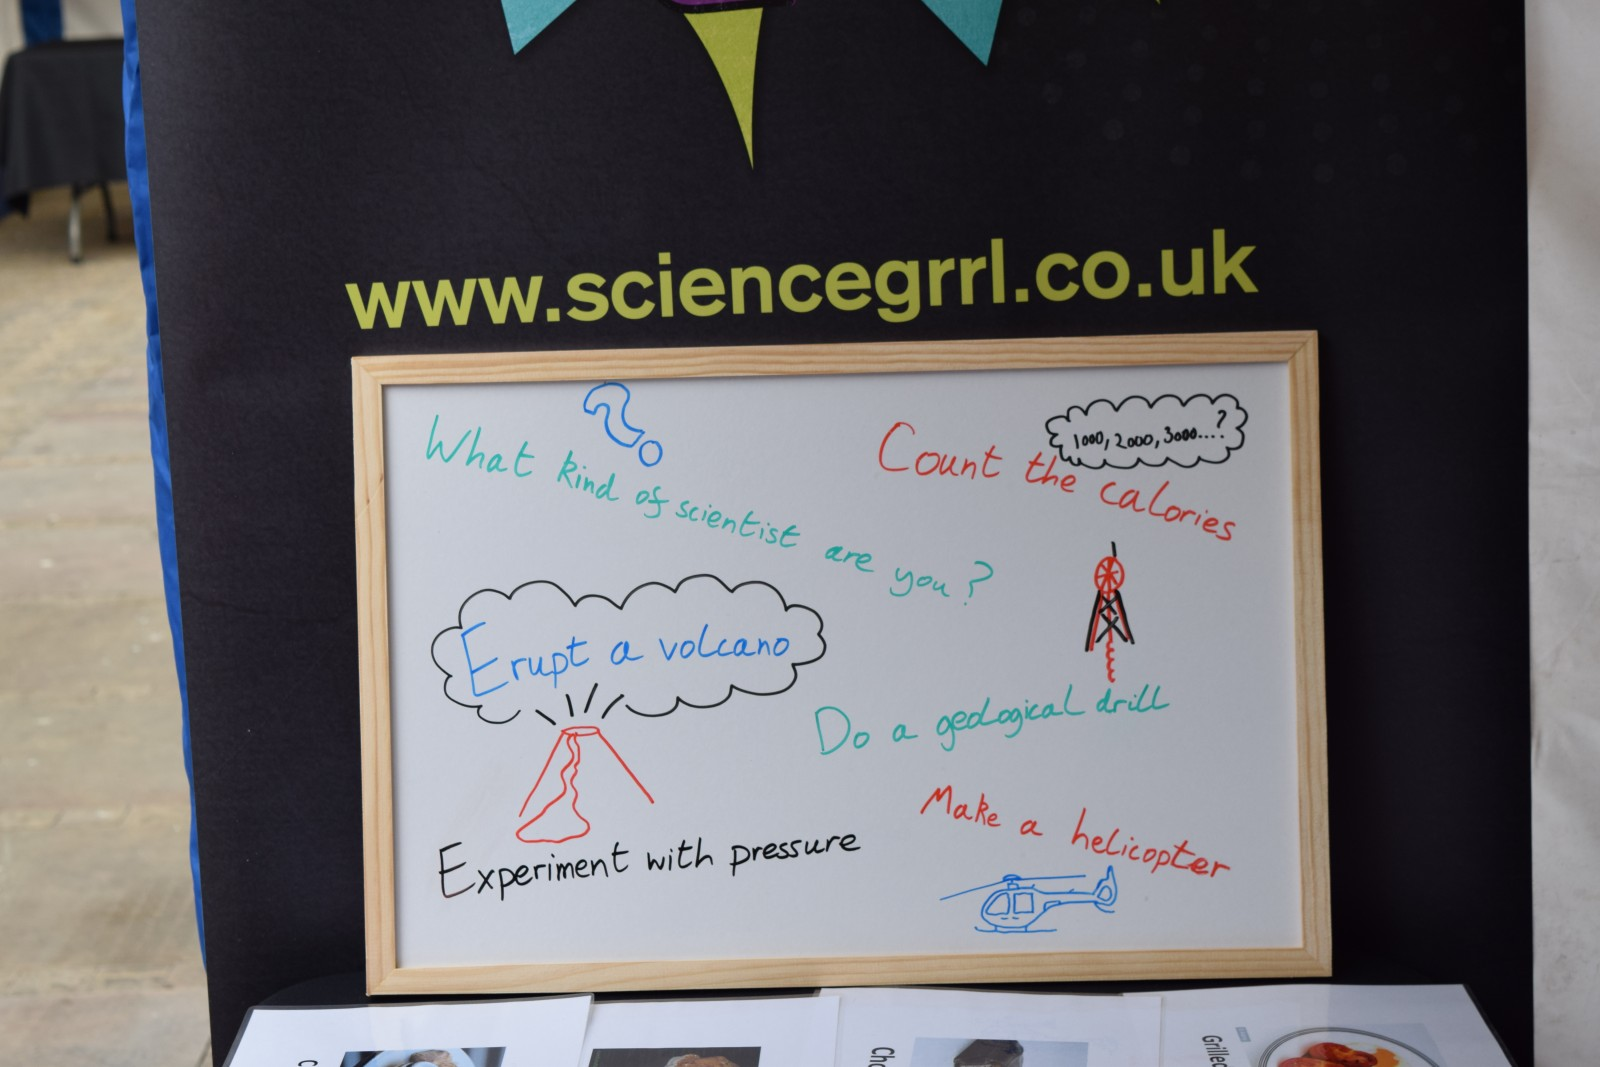 It is important for early career geoscientists to see science outreach as a significant part of their well-rounded career, be it within academia or industry. Credit: Natasha Dowey